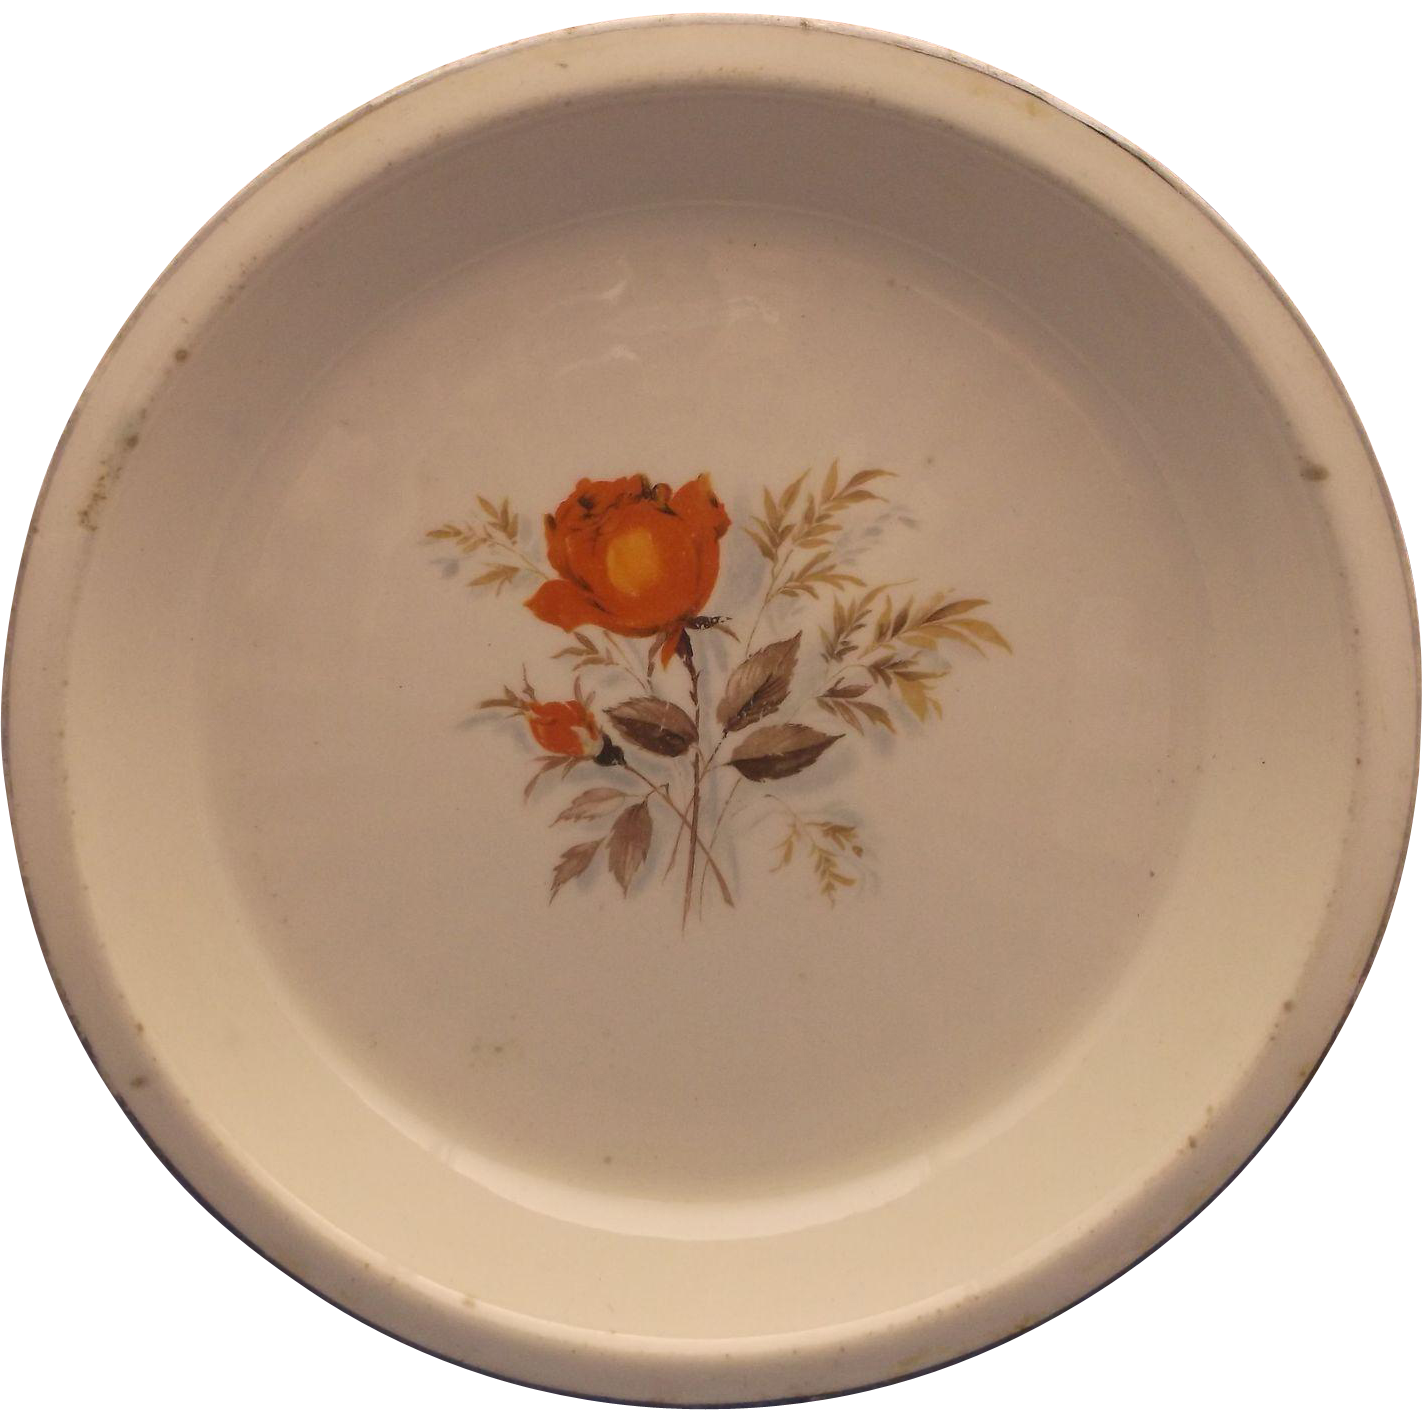 Paden City Pottery Pie Plate Baker Orange Rose Gold Trim